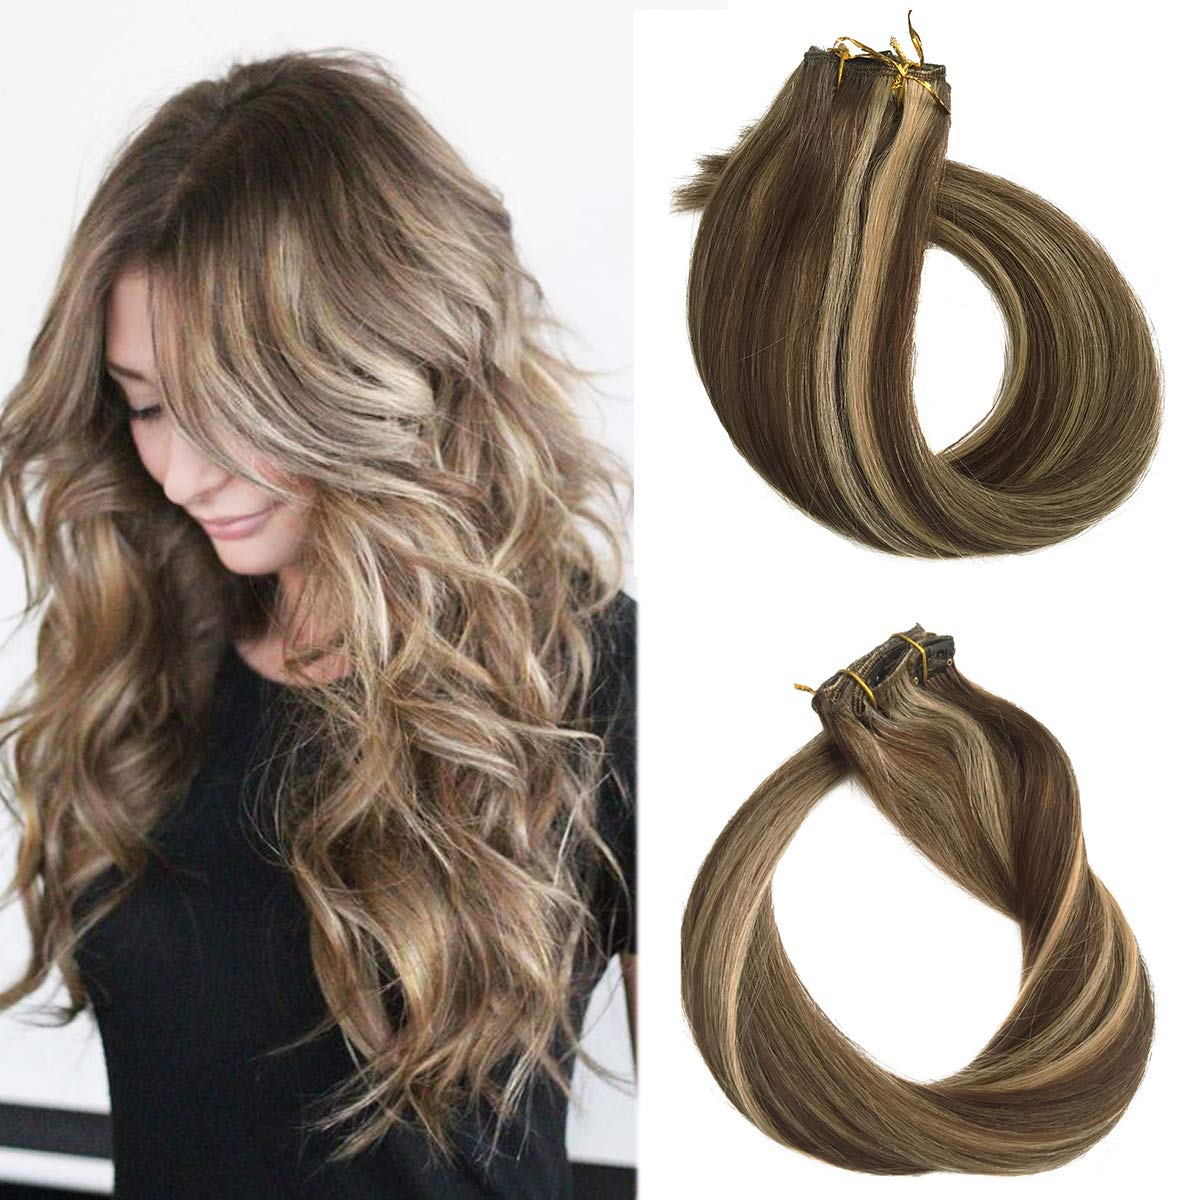 Amazon Com 18 Short Hair Extensions Clip In Human Hair Brown To Blonde Highlights 70grams 7pcs Silky Straight Full Head Clip On Balayage Extensions 4 27 Beauty